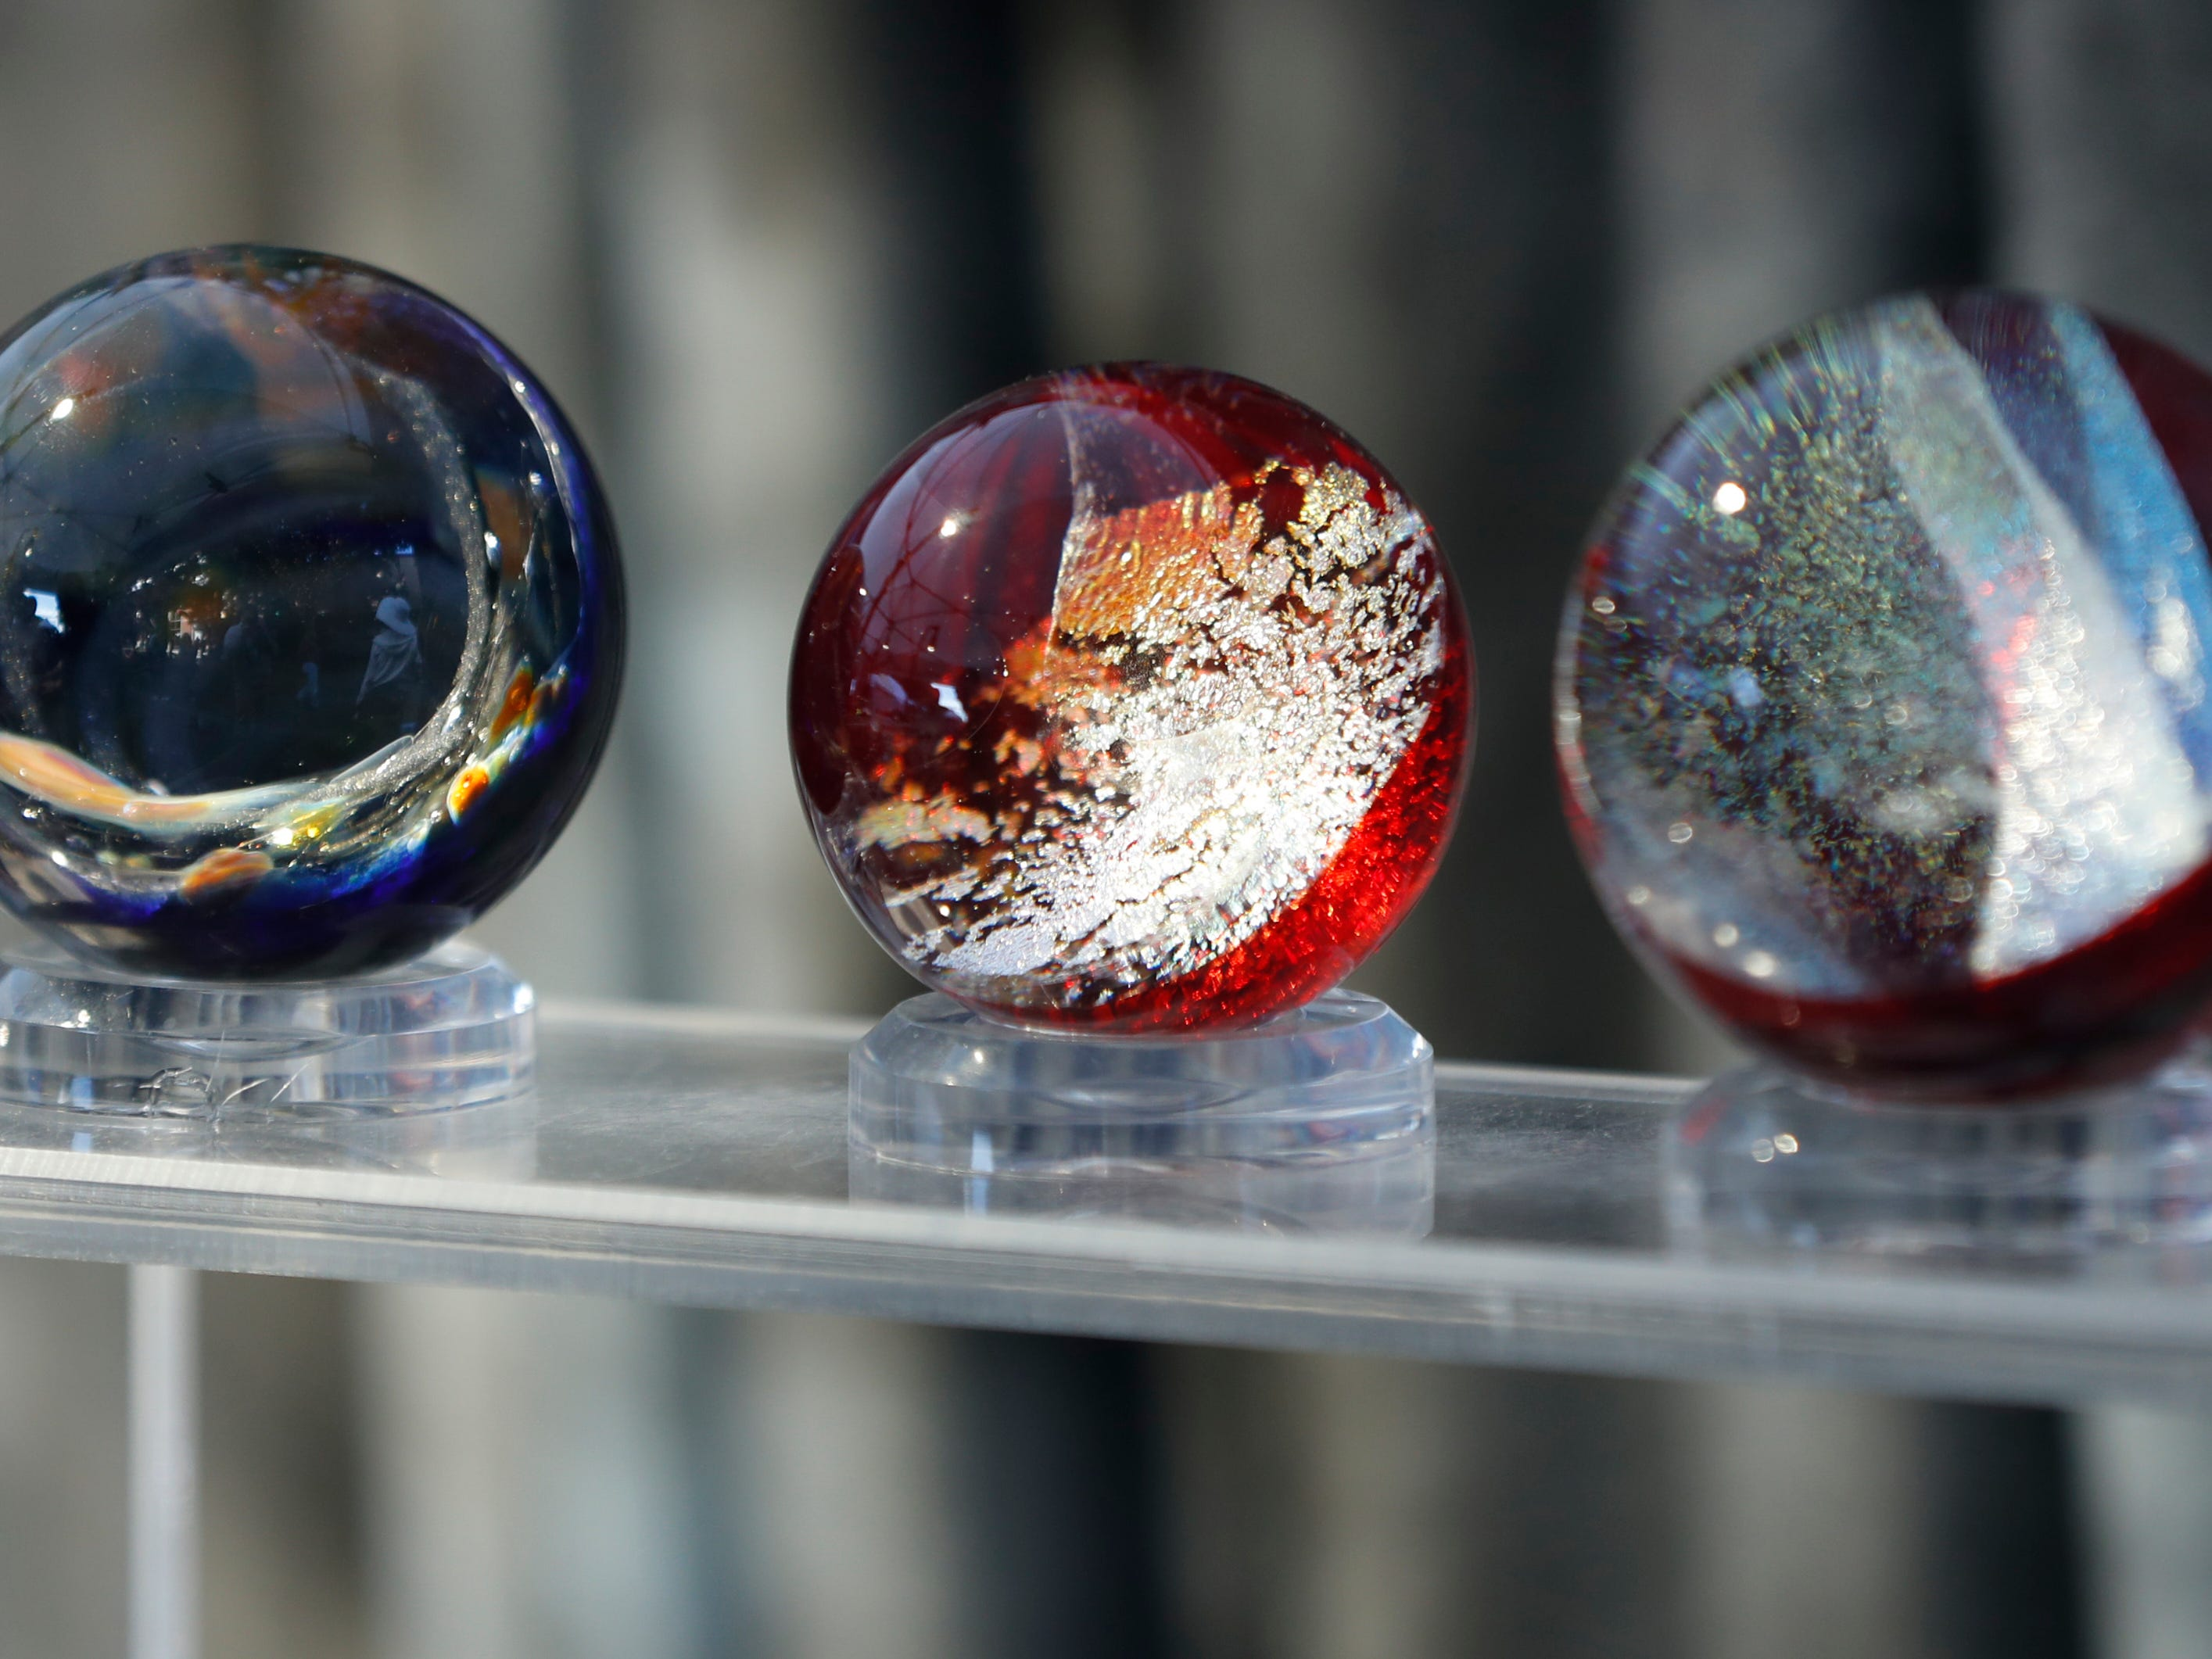 Marbles for sale at the Tempe Festival of the Arts on Mill Avenue on Friday, November 30, 2018.